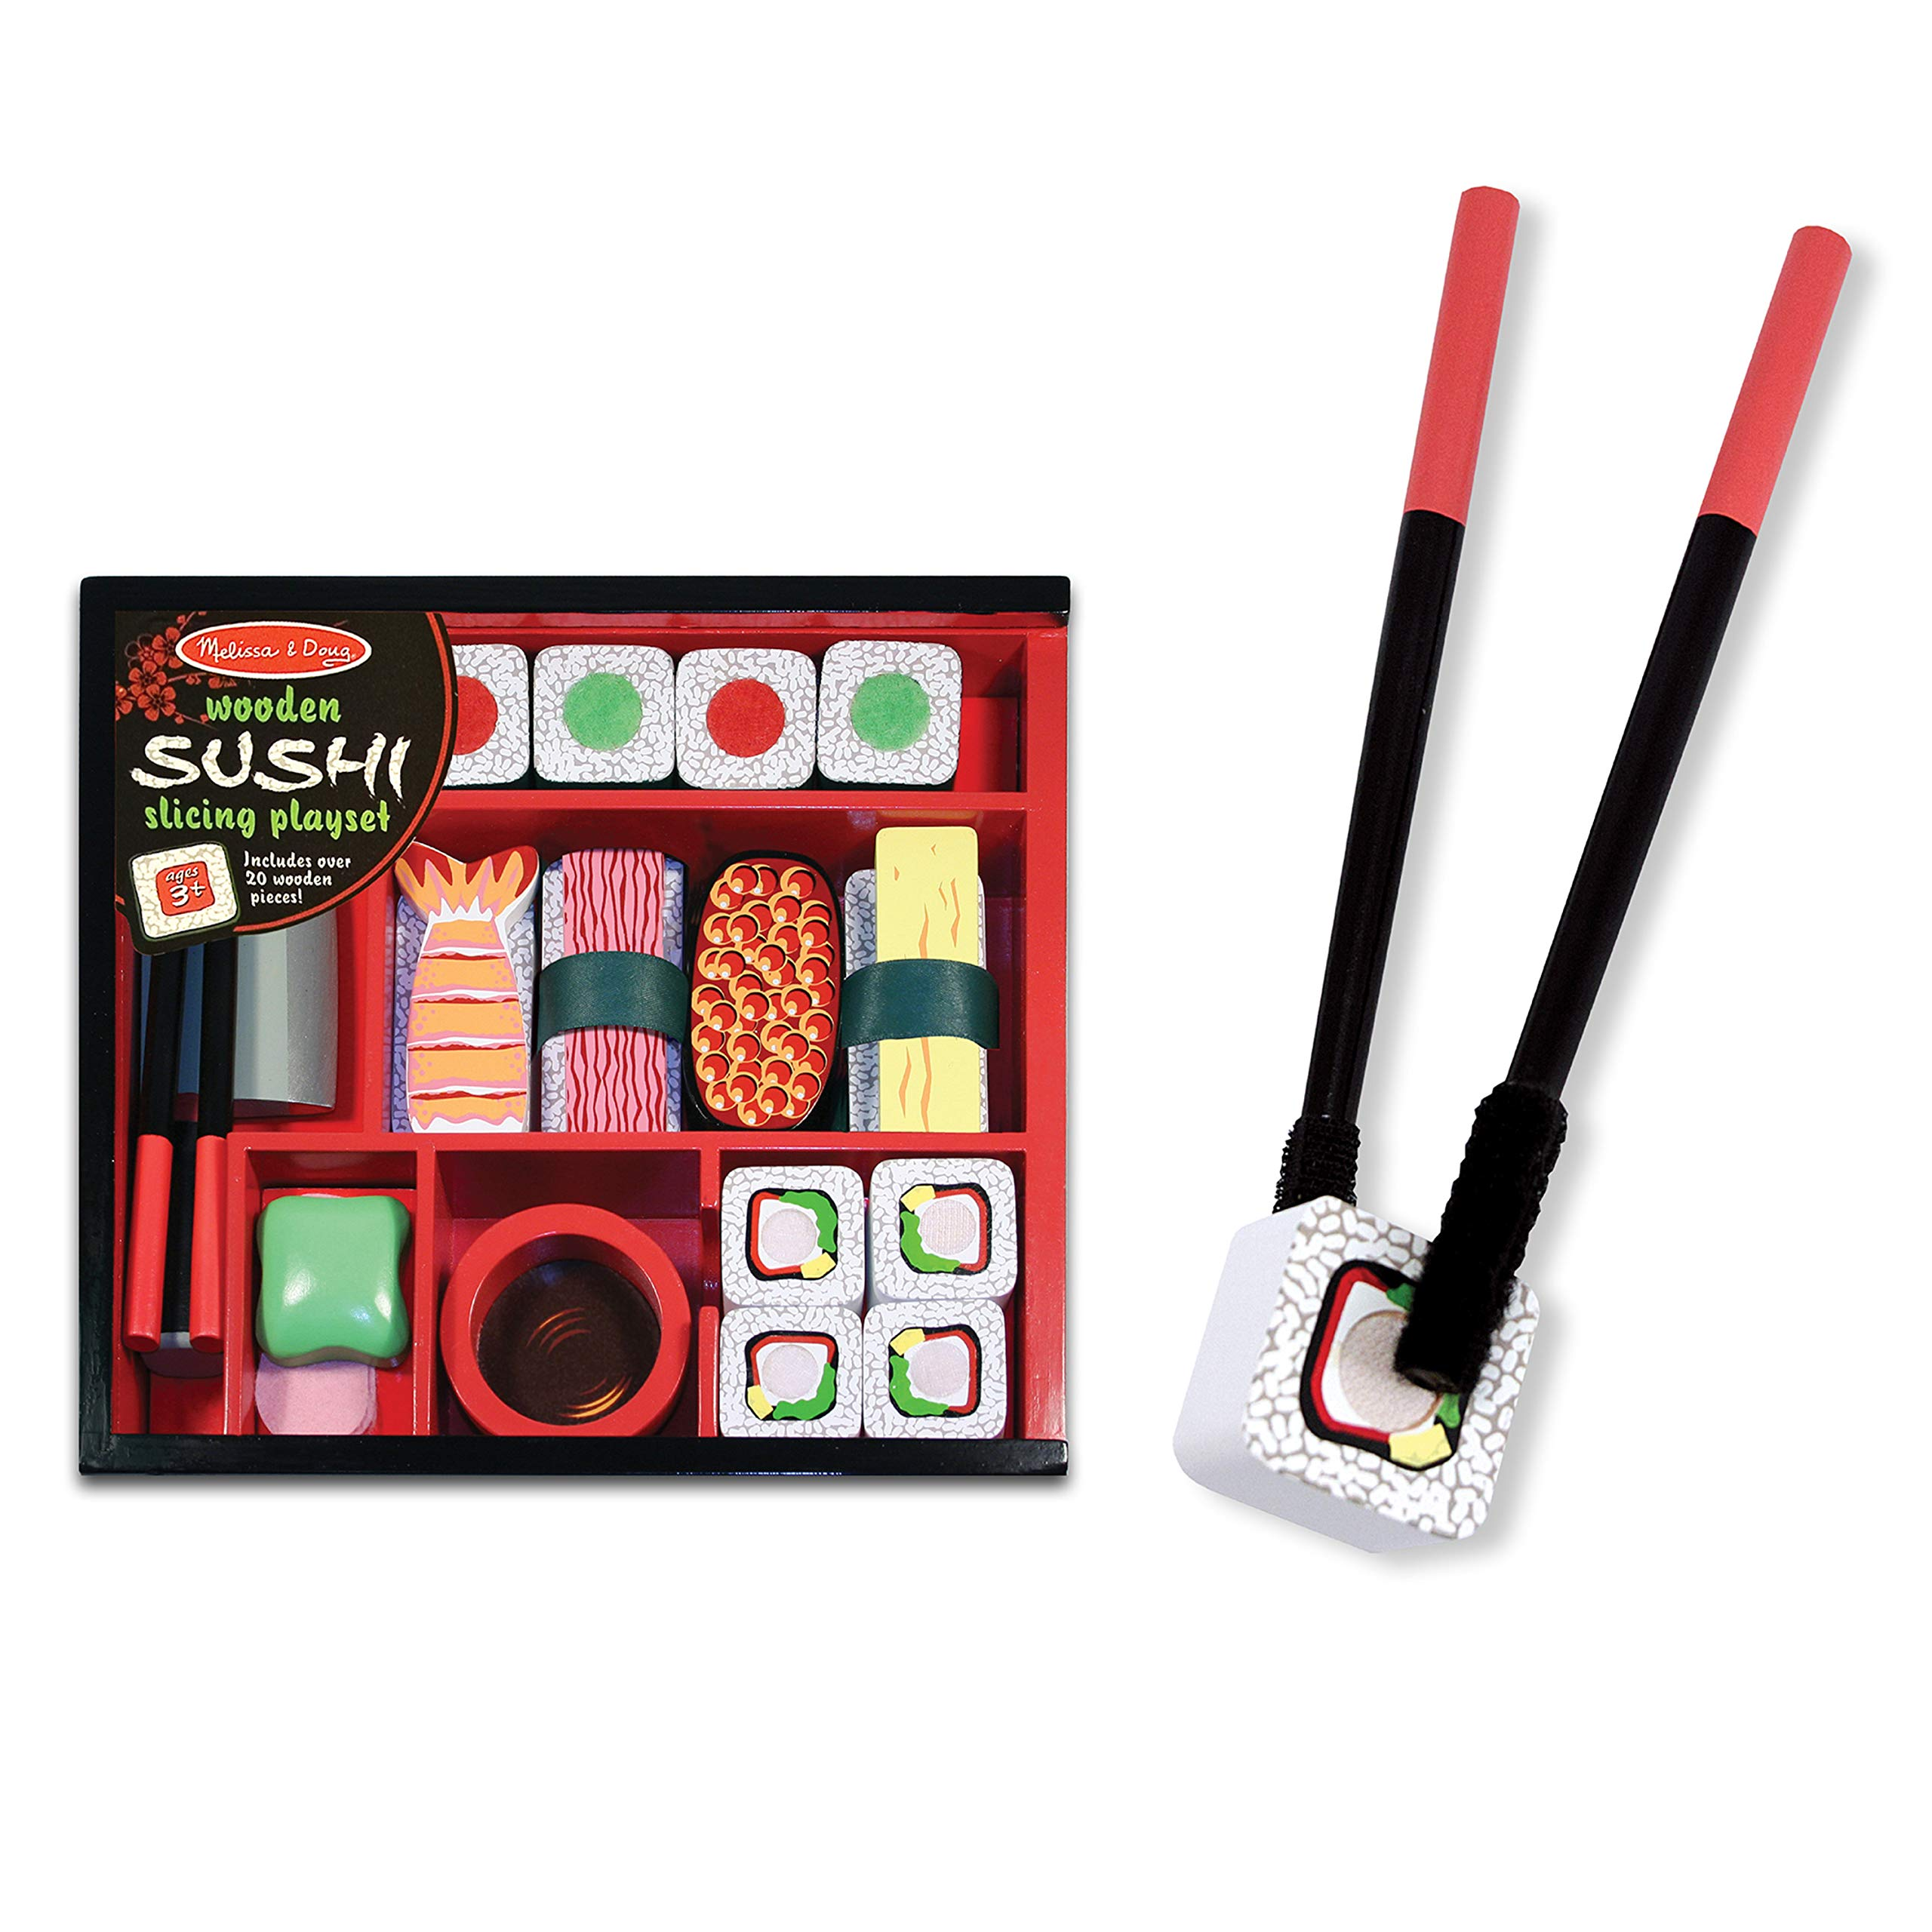 Melissa & Doug Sushi Slicing Play Set Multi Colored, H: 10 x W: 9 x D: 2                Iwako Japanese Bento Lunch Eraser Set                Sushi Go! - The Pick and Pass Card Game                HABA Sushi Play Set